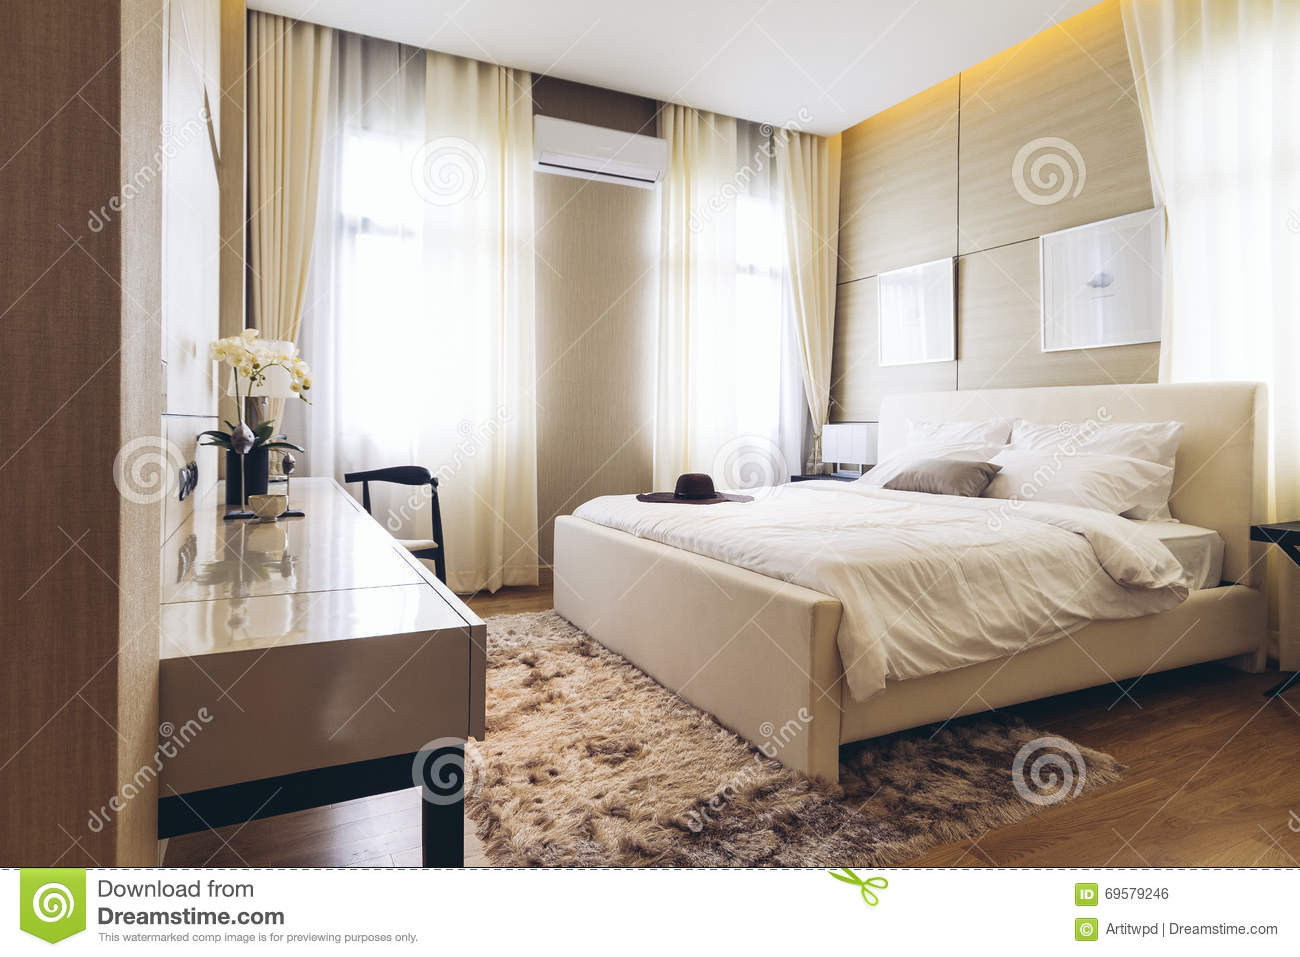 House Mod Le Moderne Italien Chambre Coucher Photo Stock Image 69579246